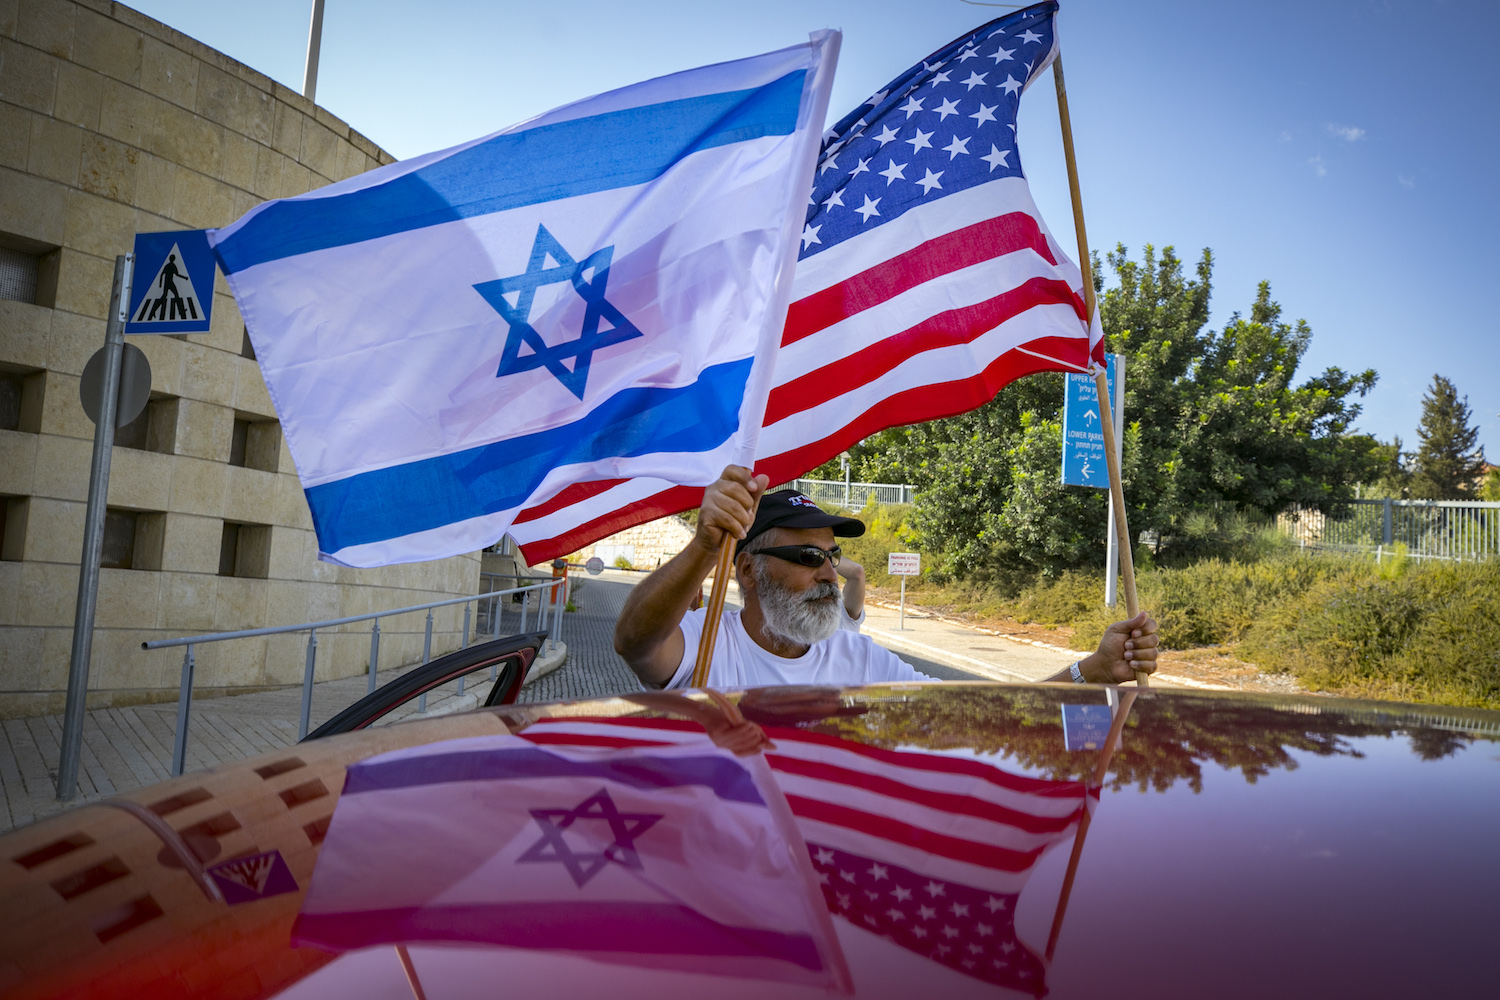 Israeli Trump supporters wave U.S. and Israeli flags outside the U.S. embassy in Jerusalem, October 27, 2020. (Olivier Fitoussi/Flash90).